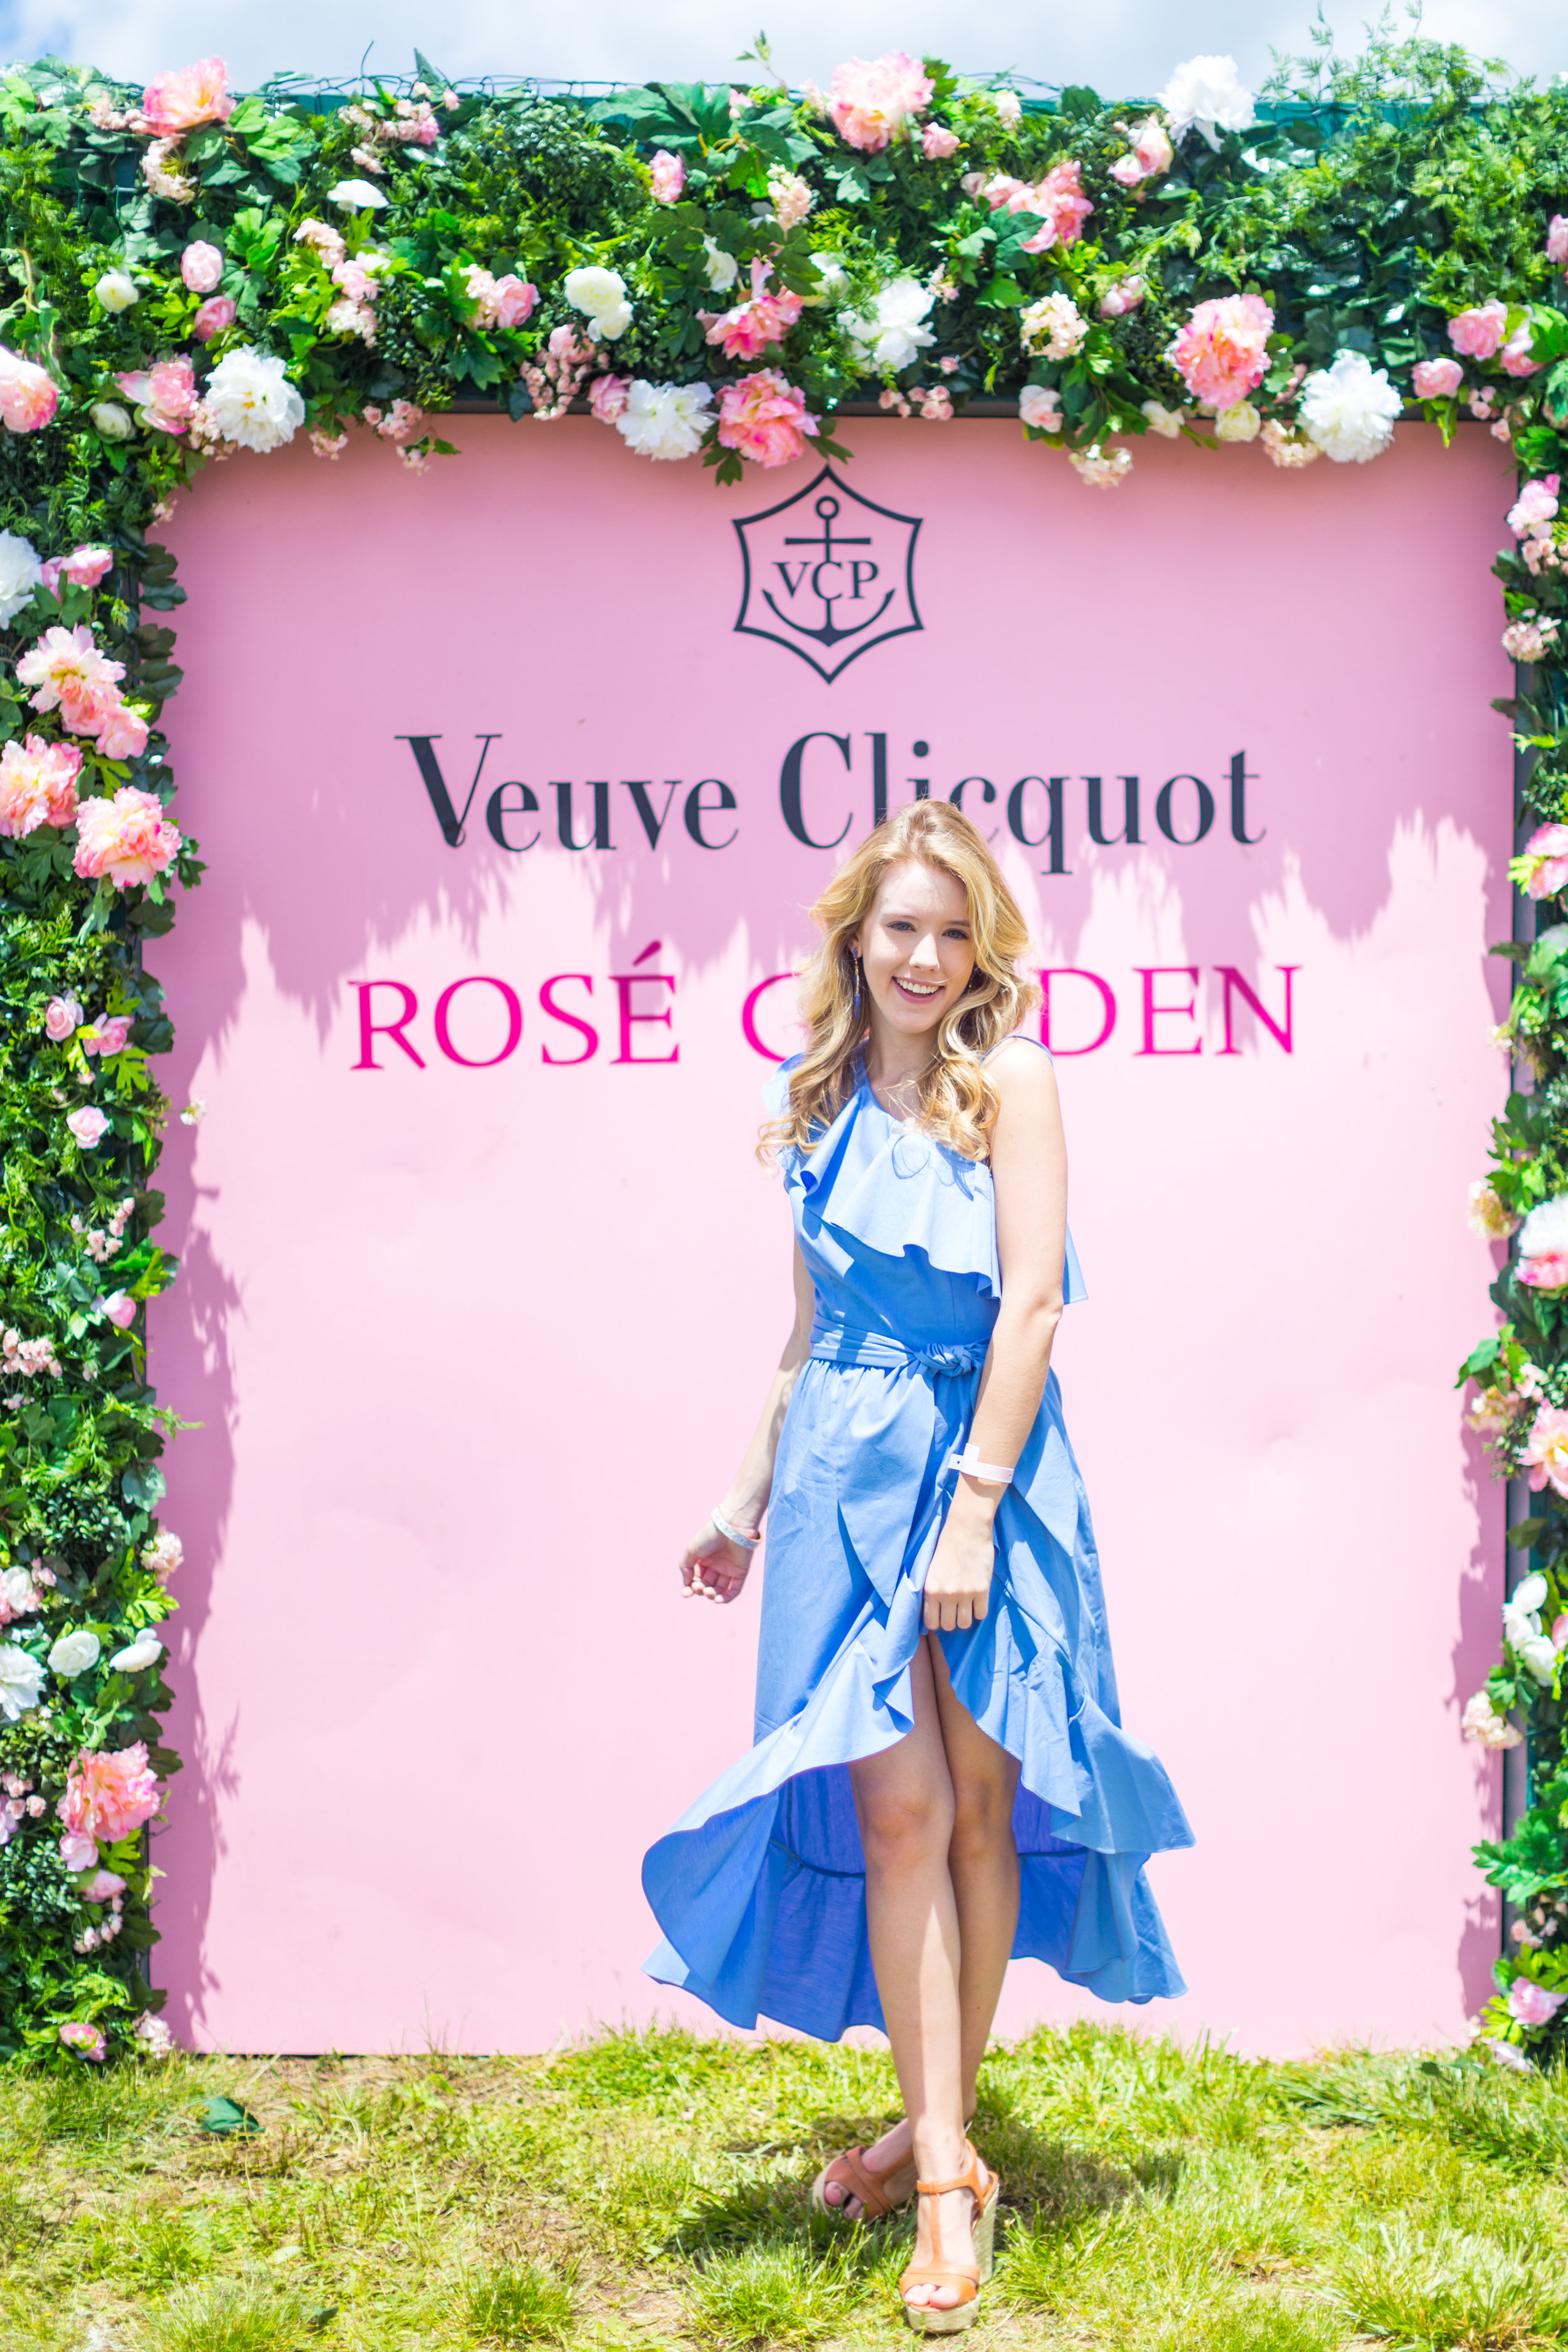 Veuve Clicquot Polo Classic NYC Summer Style Ruffled One Shoulder Blue Dress.jpg